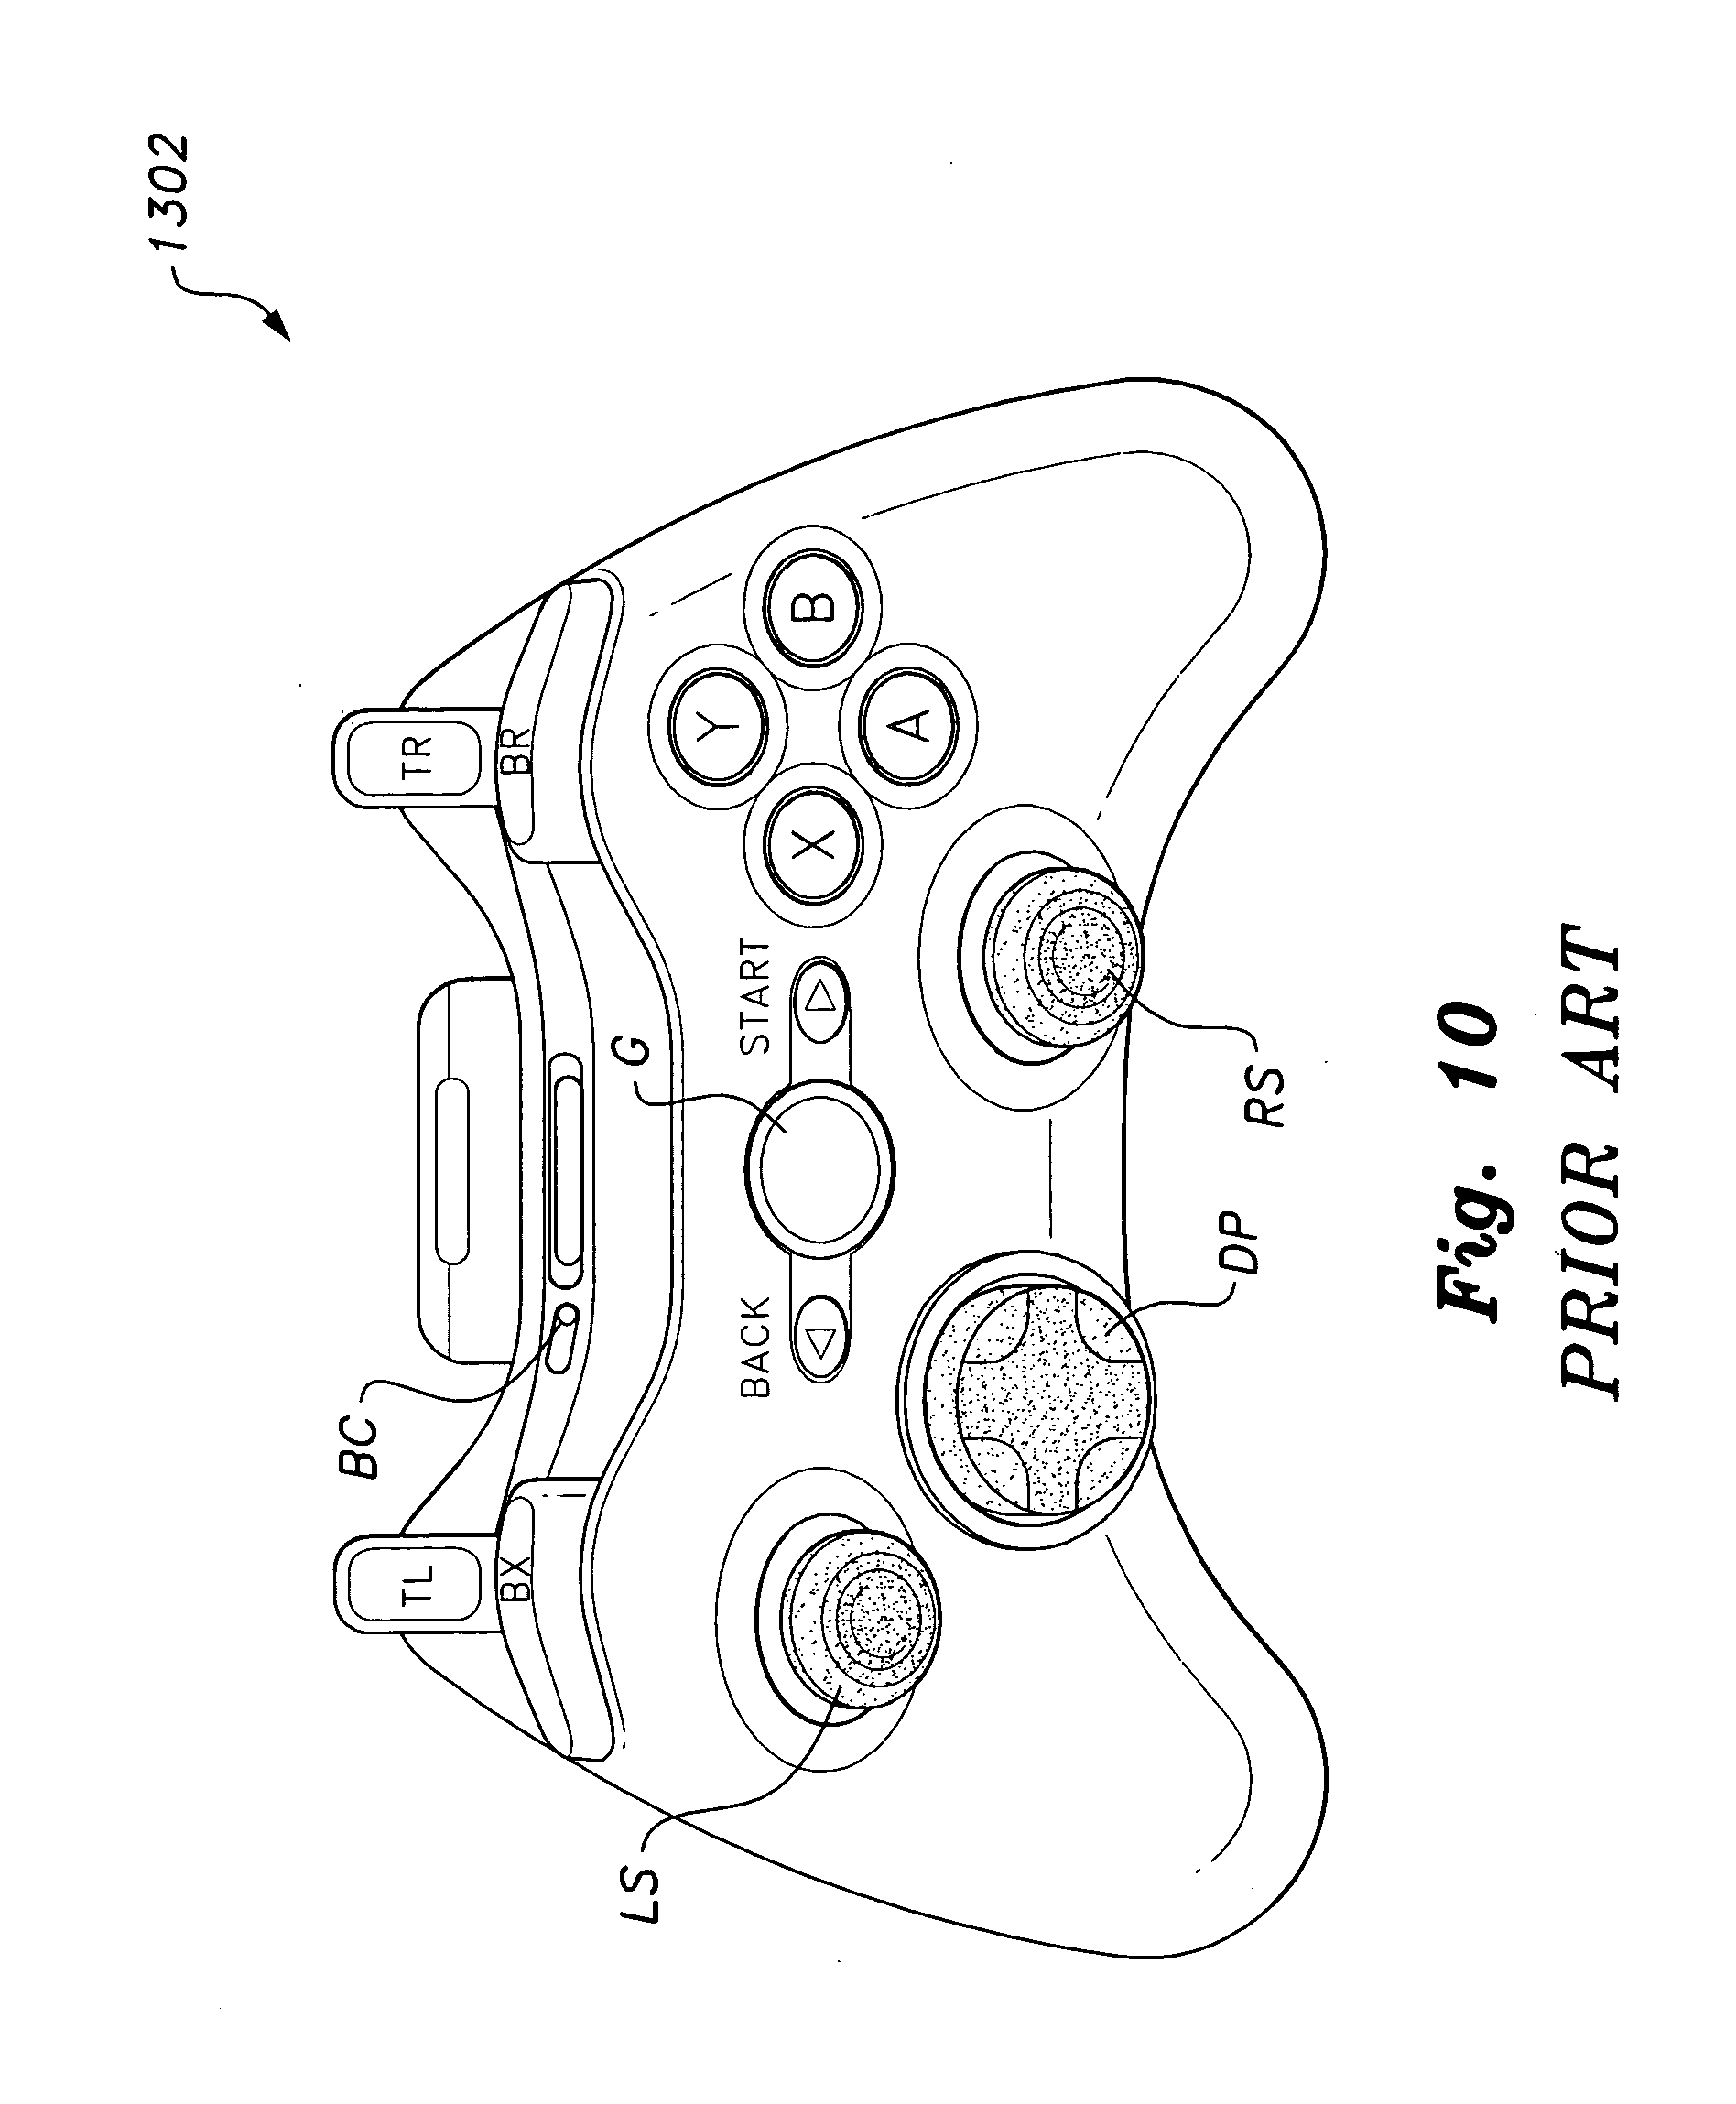 hight resolution of images of xbox controller diagram blank sc